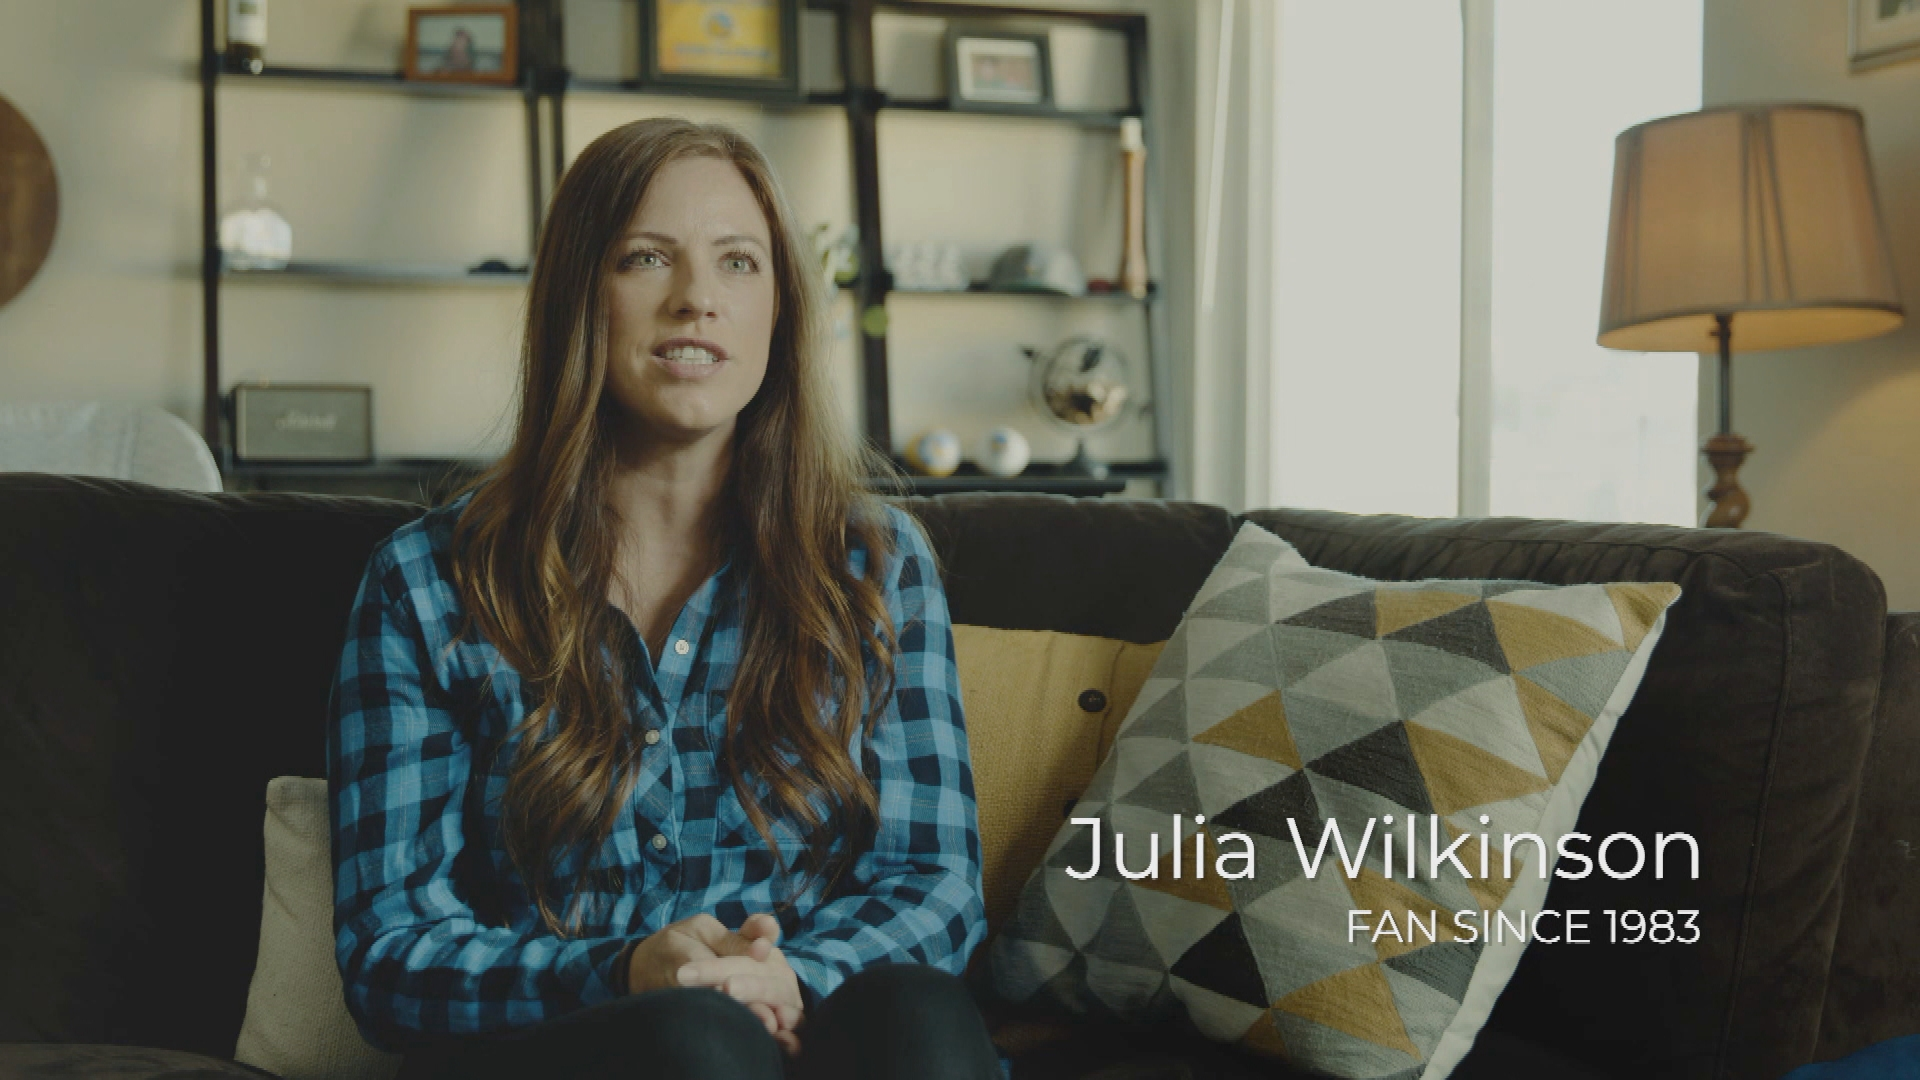 Our Home Court, by Realtor.com: Julia Wilkinson